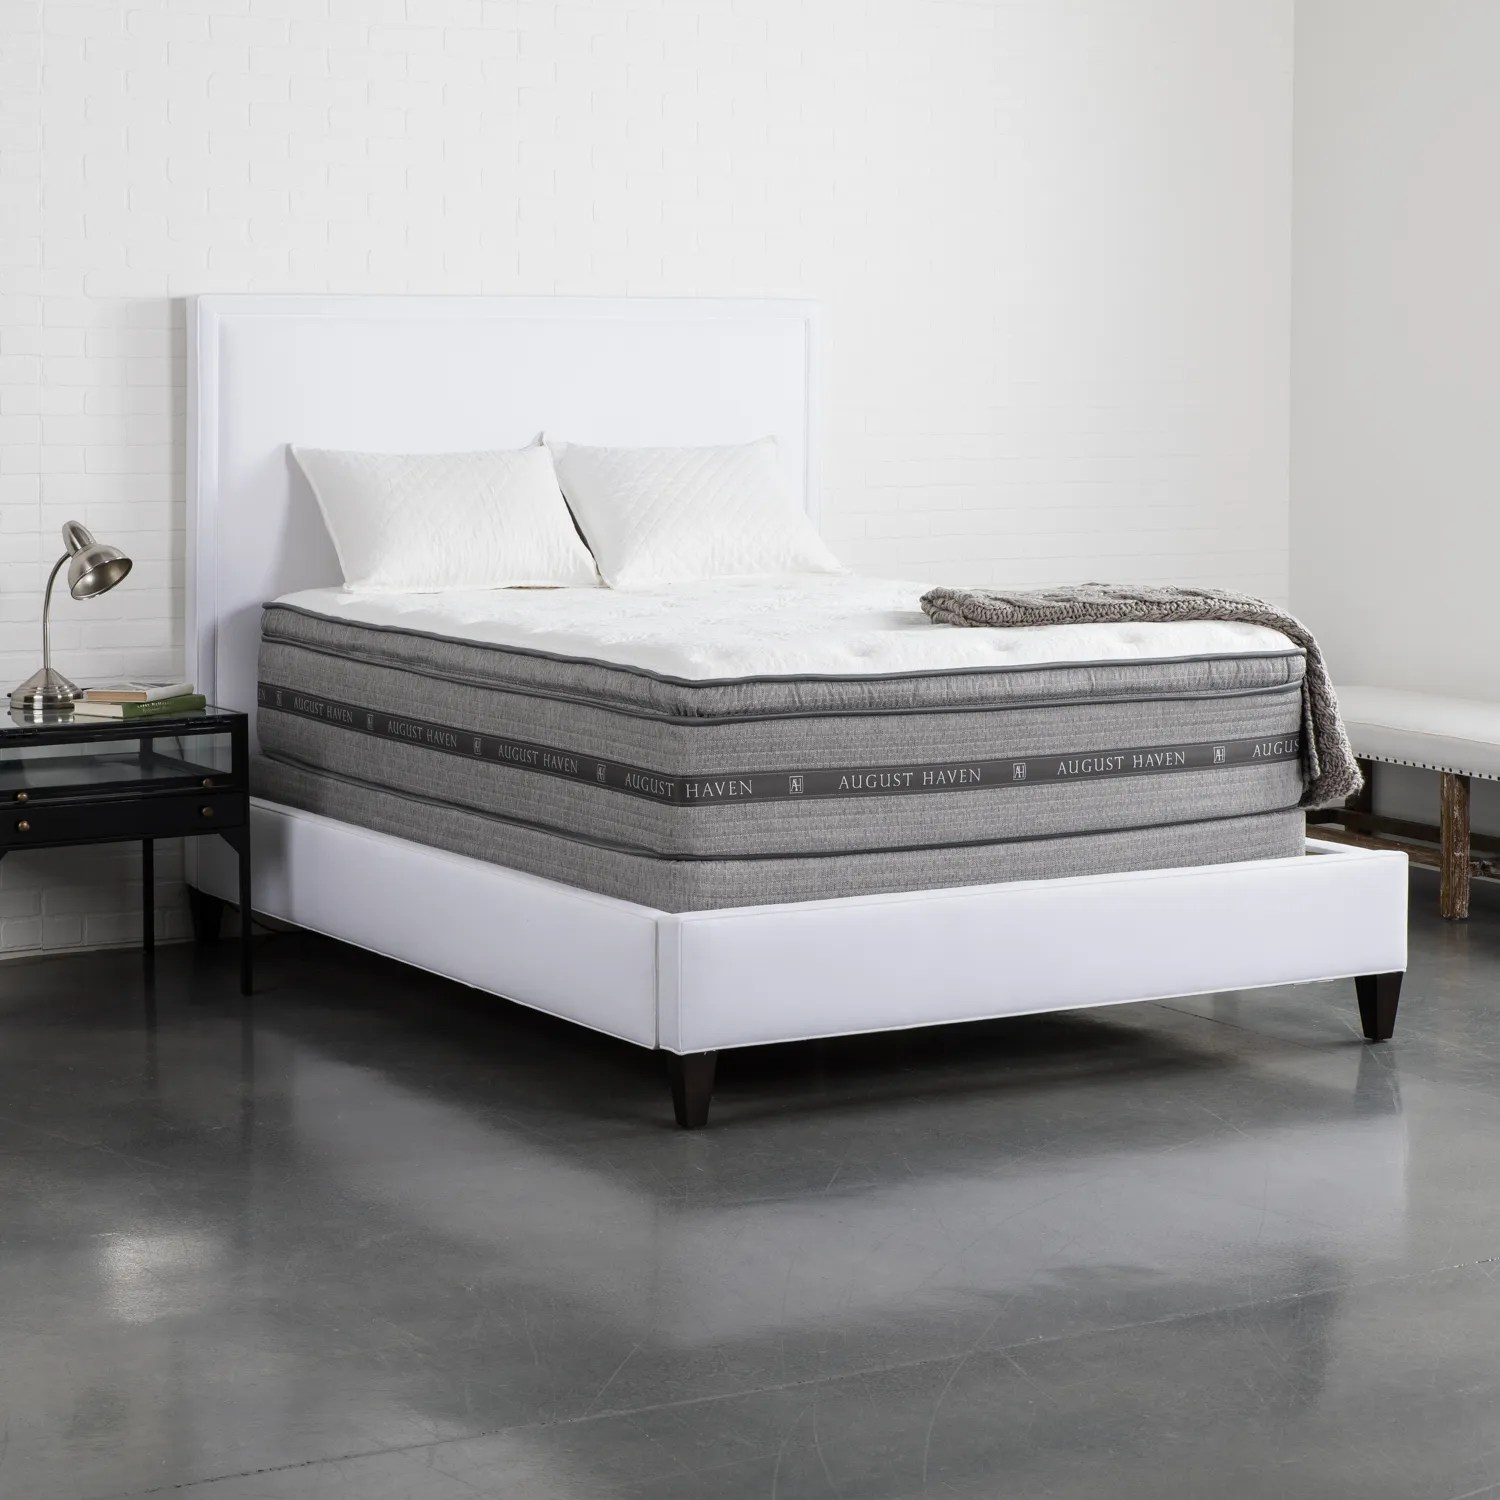 Pillow Top King Mattress August Haven Haven Pillow Top King Mattress